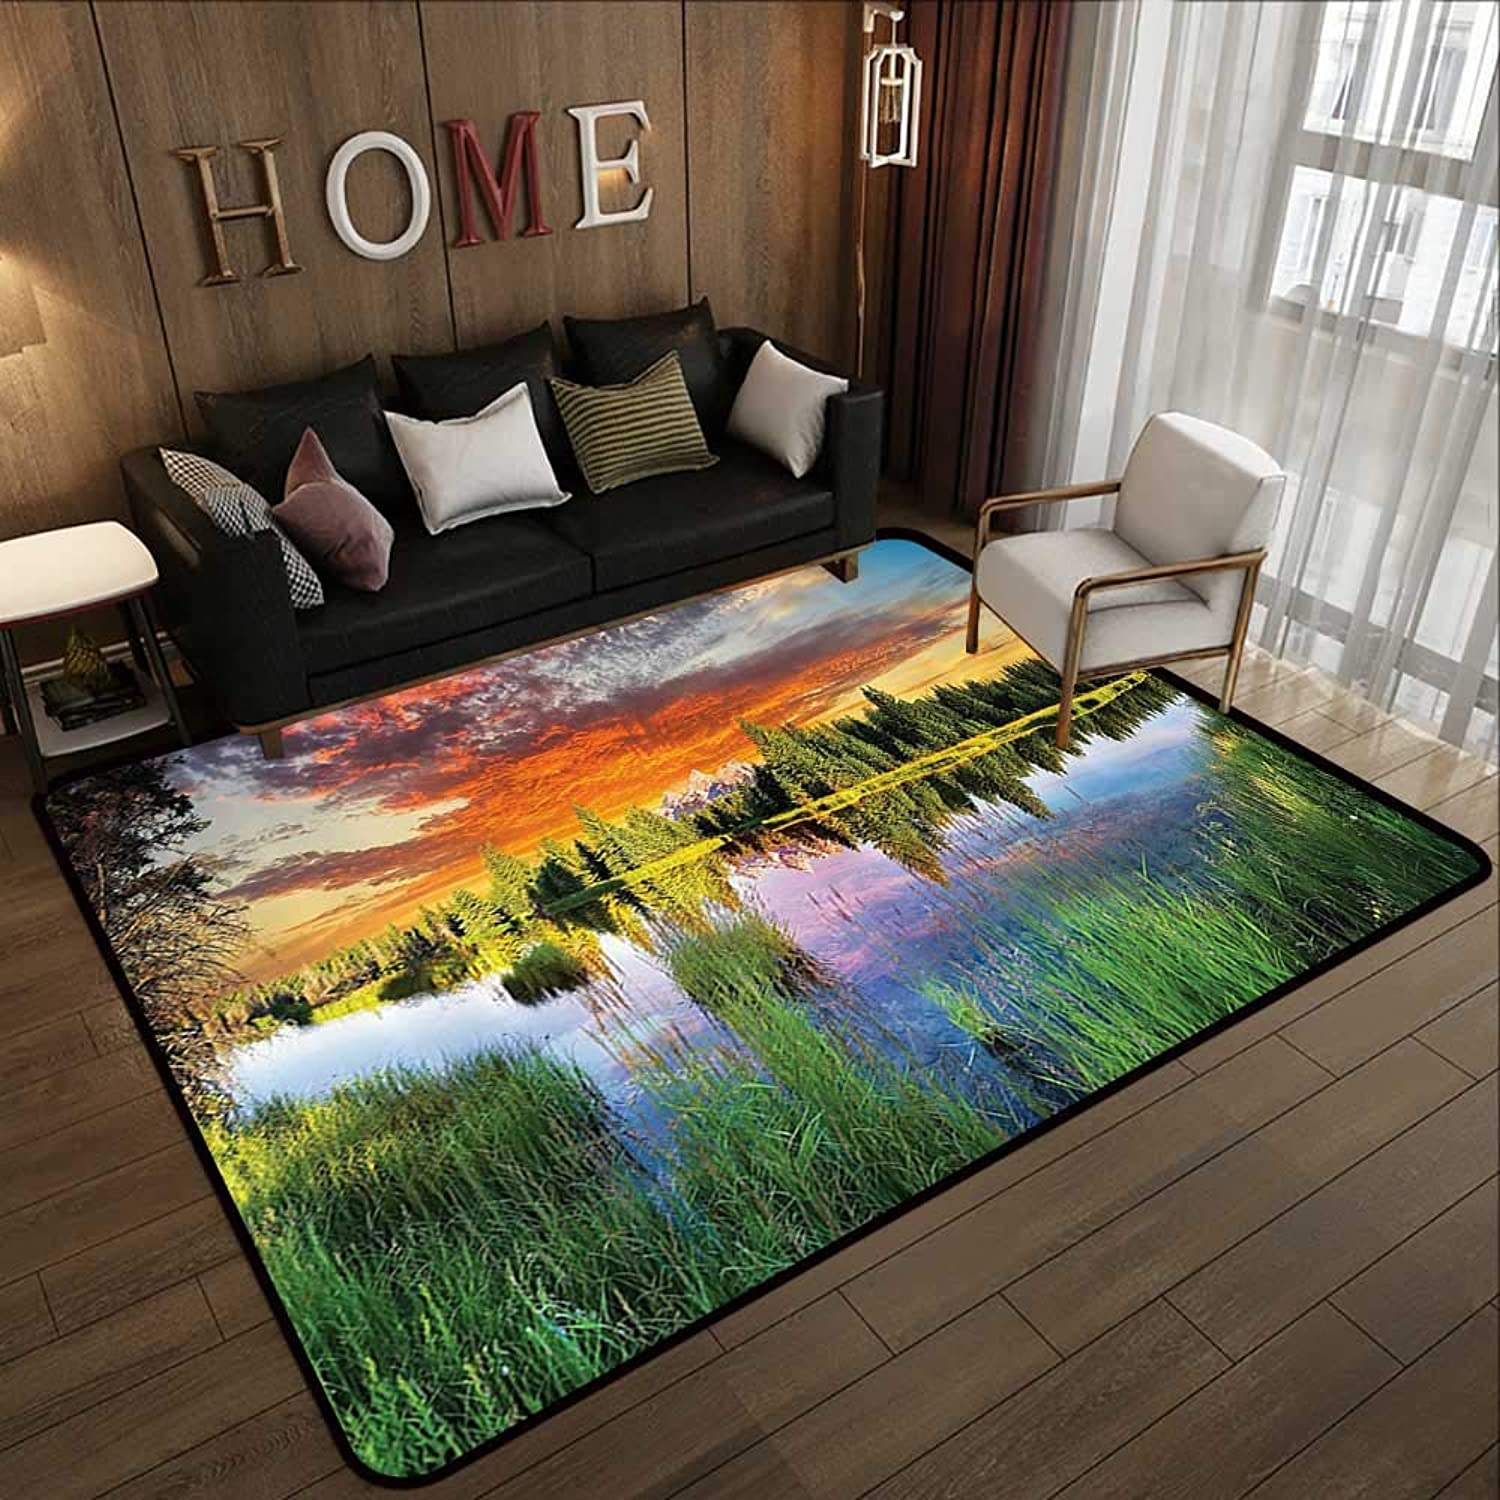 Carpet mat,Lake House Decor Collection,Calm Natural Sunrise by River Forest Trees Clouds Weeds Sunlight Reflection on Water,Multi 47 x 59  Floor Mat Entrance Doormat